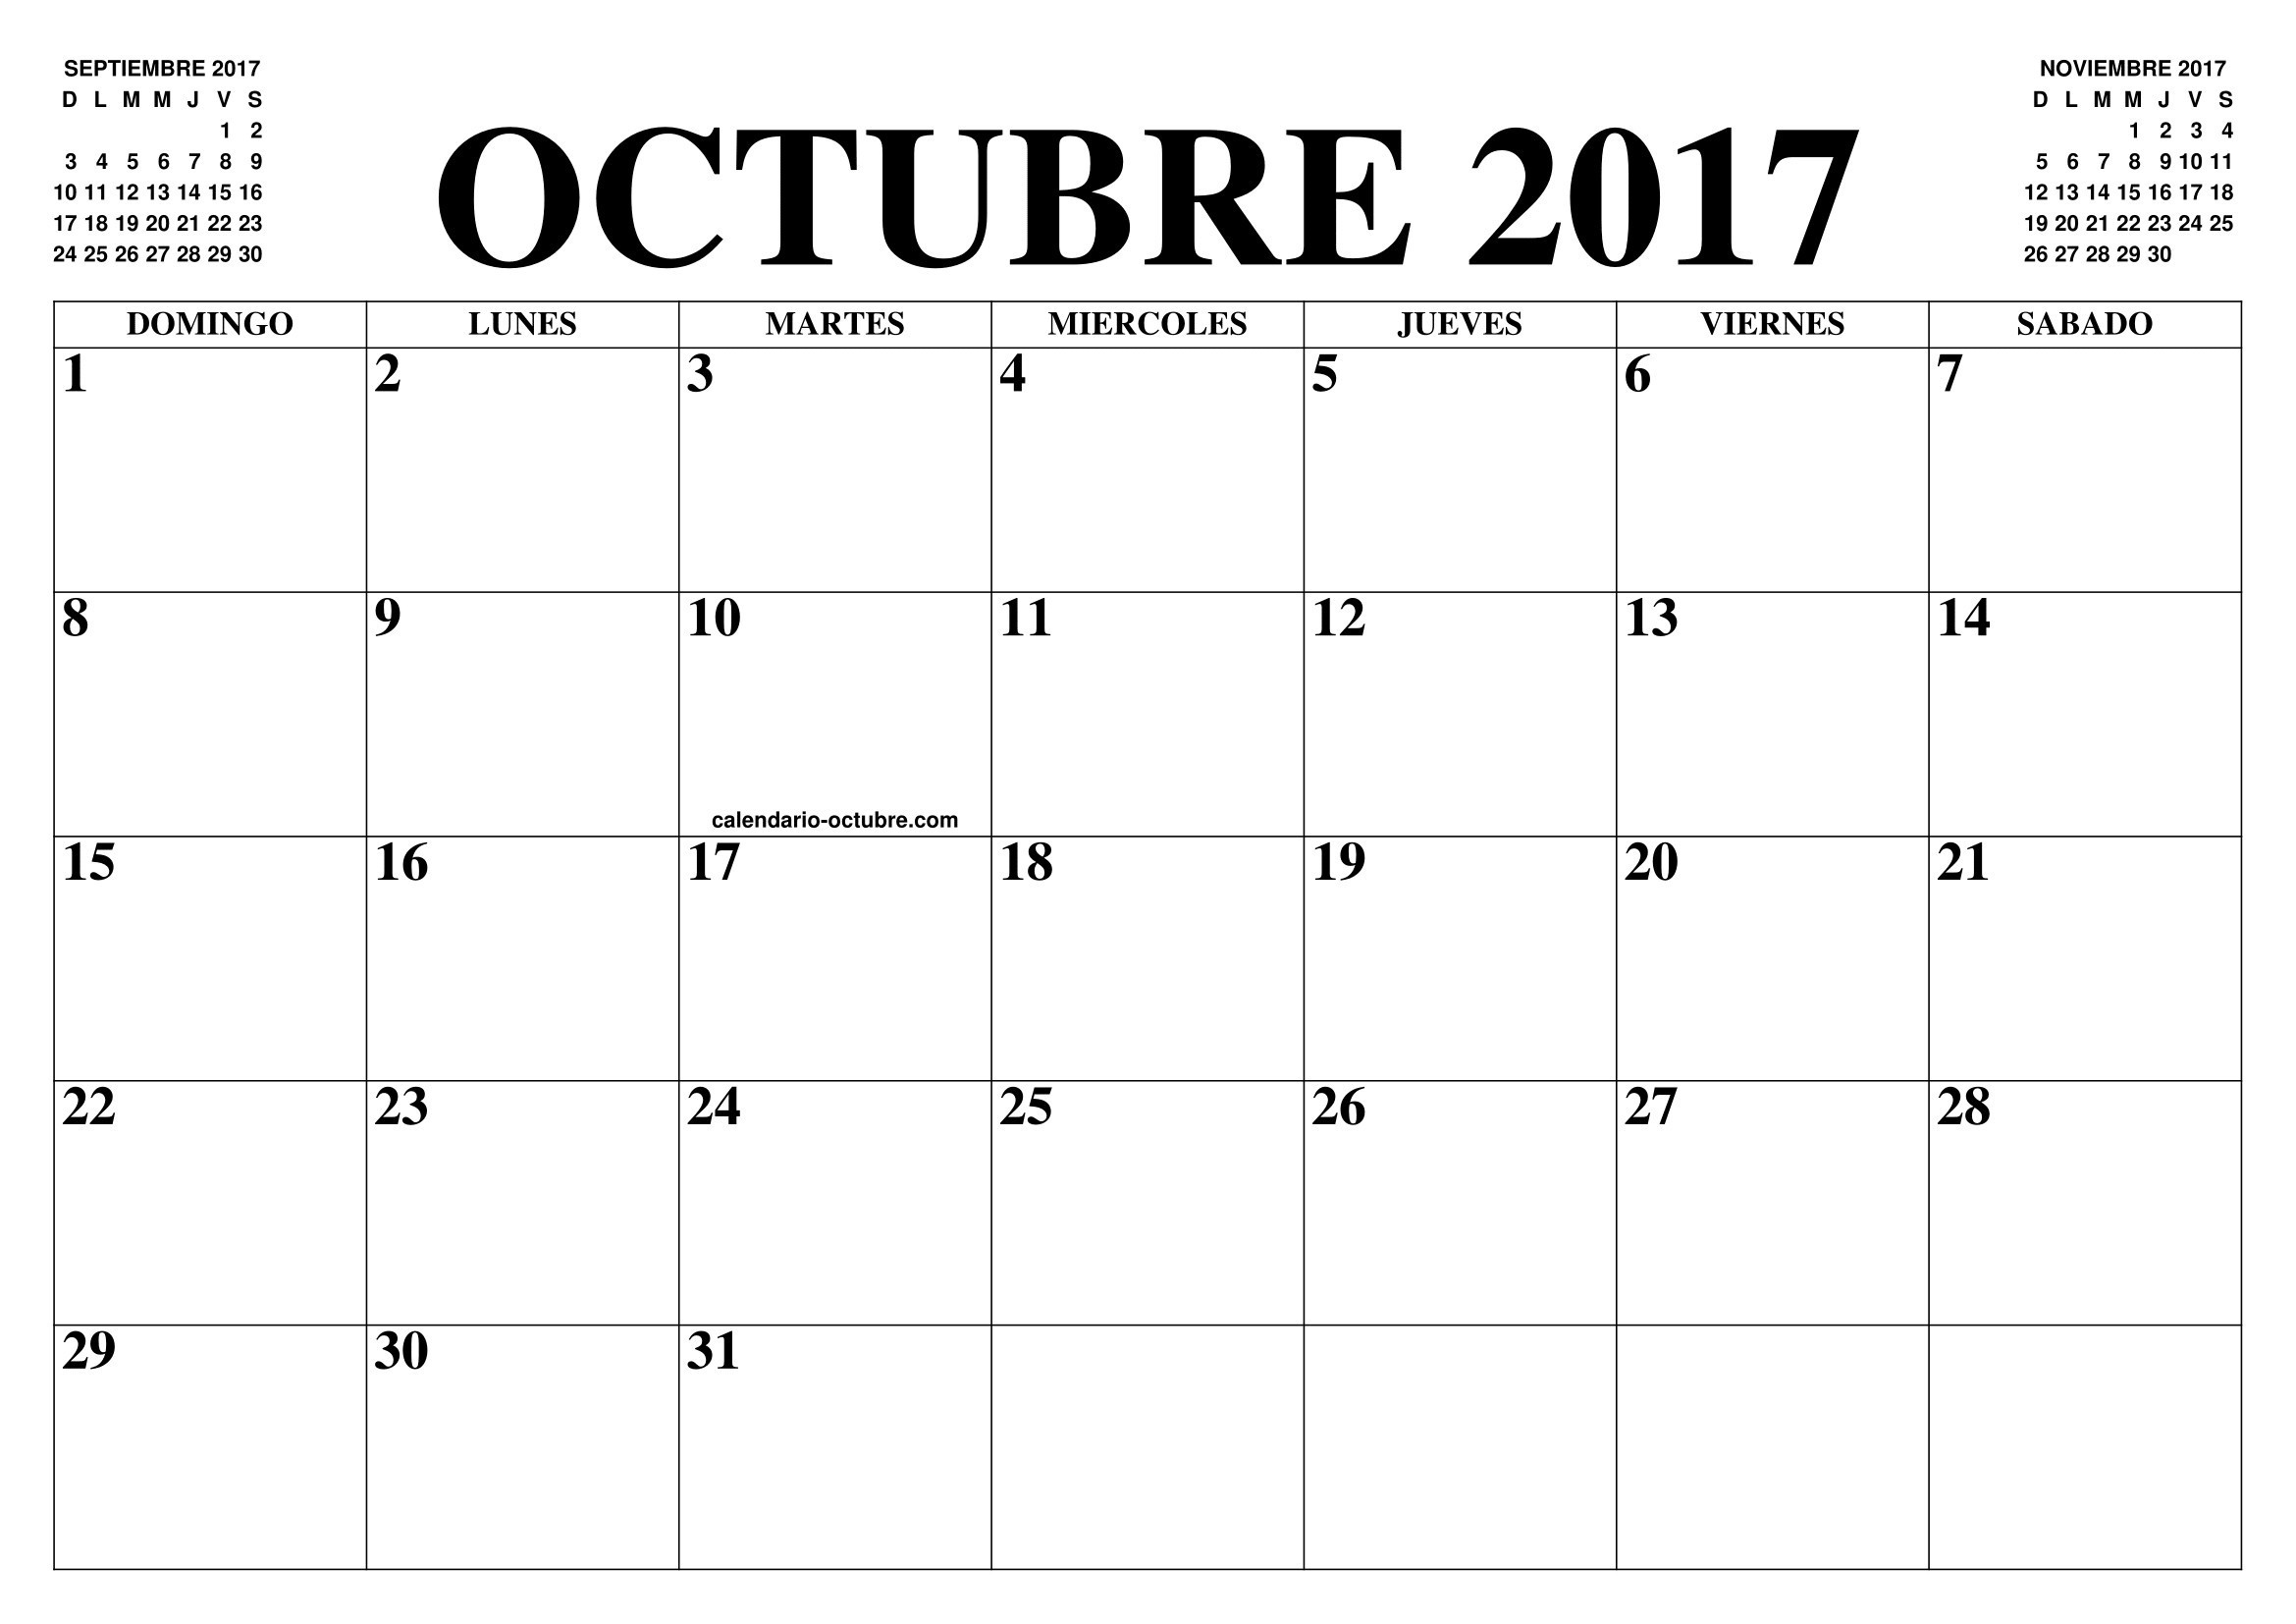 Calendario Enero 2019 Para Imprimir A4 Actual Calendario Diciembre De 2019 53ld Calendario T Of Calendario Enero 2019 Para Imprimir A4 Actual Calendario Diciembre De 2019 53ld Calendario T